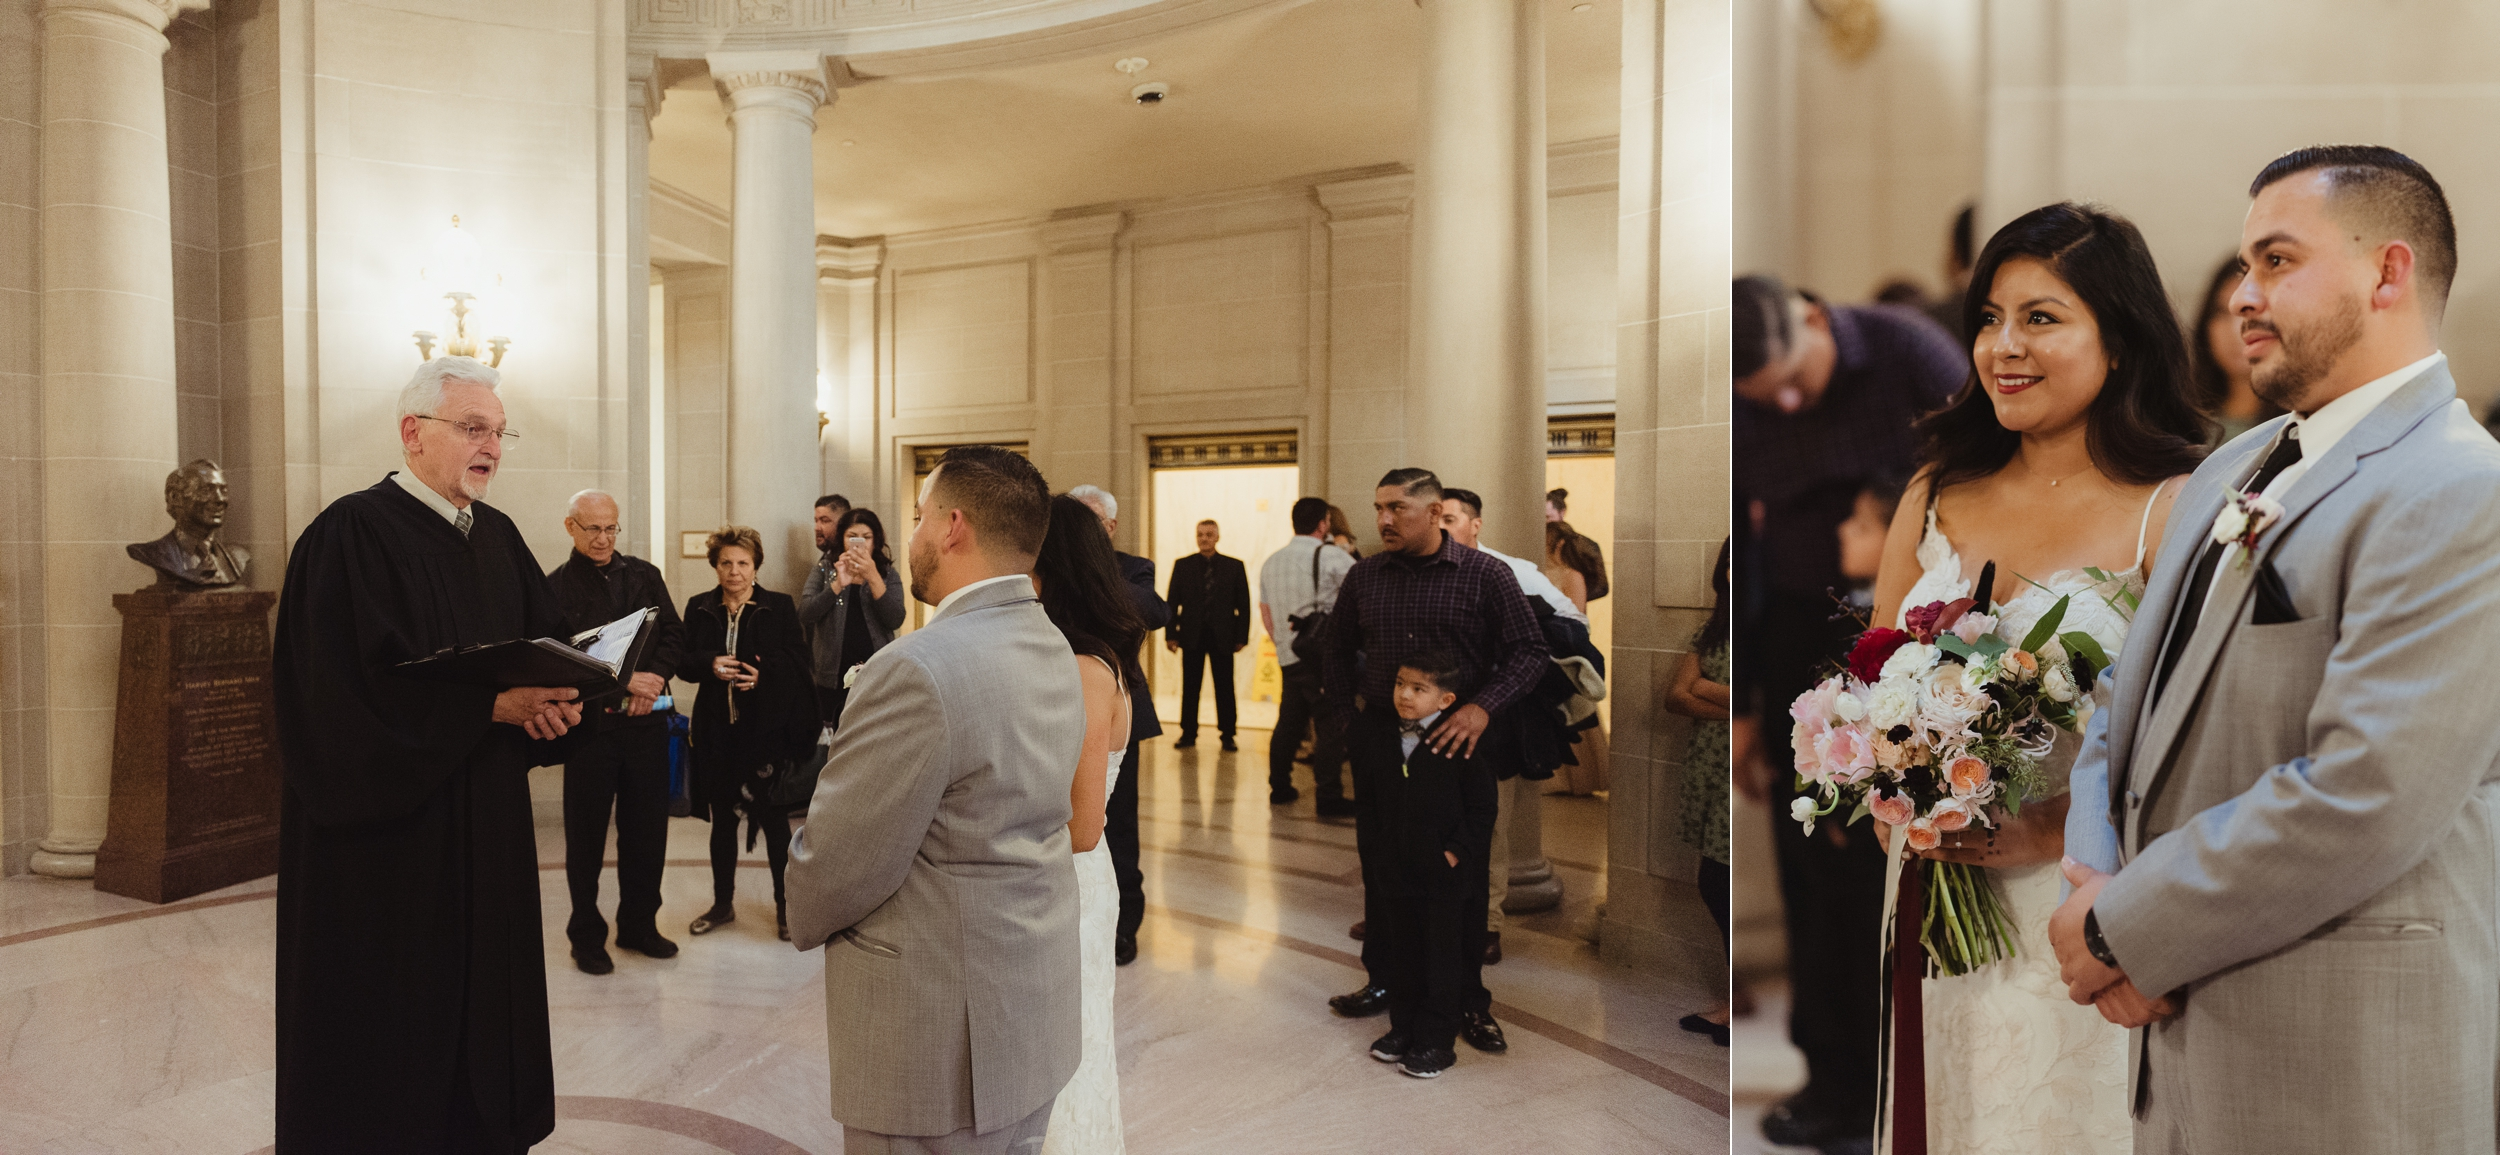 san-francisco-city-hall-wedding-vivianchen-RK08.jpg